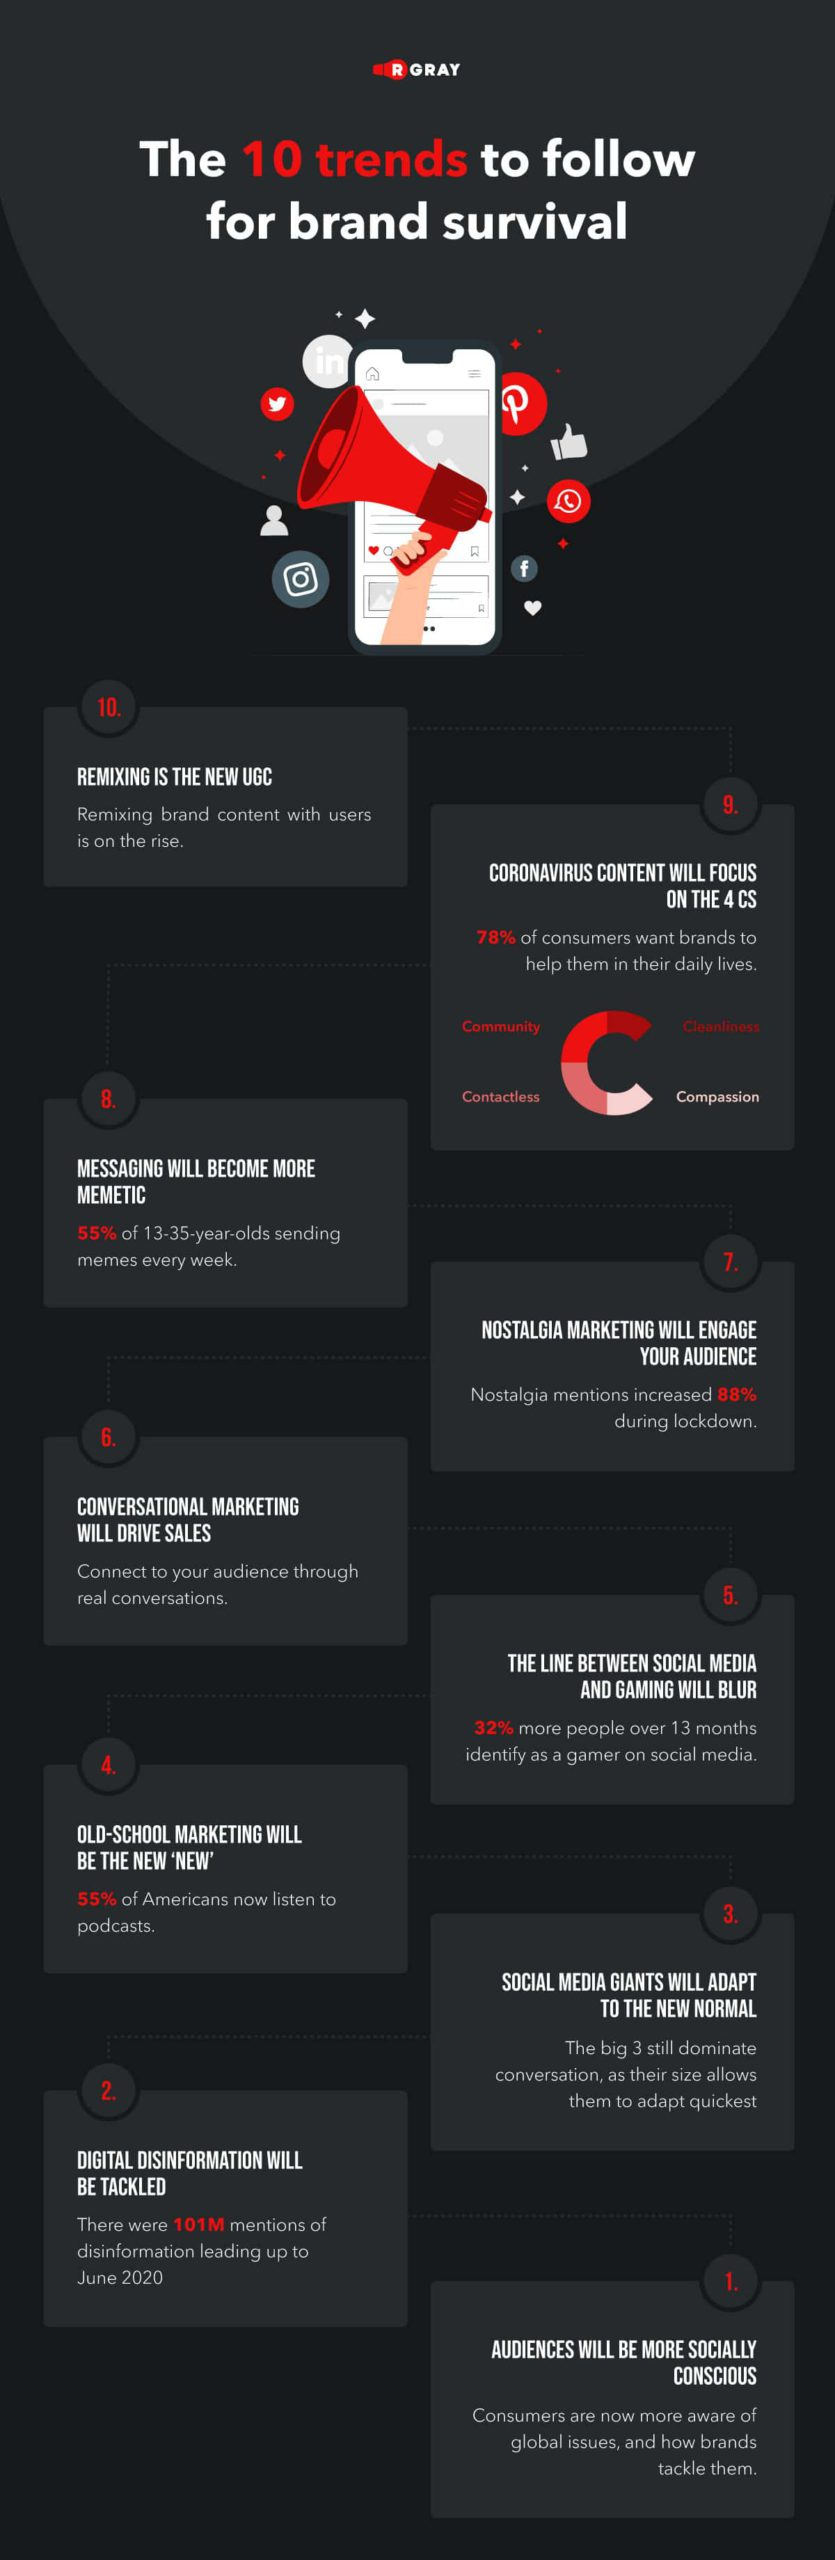 Our team shared the 10 key points in the infographic below